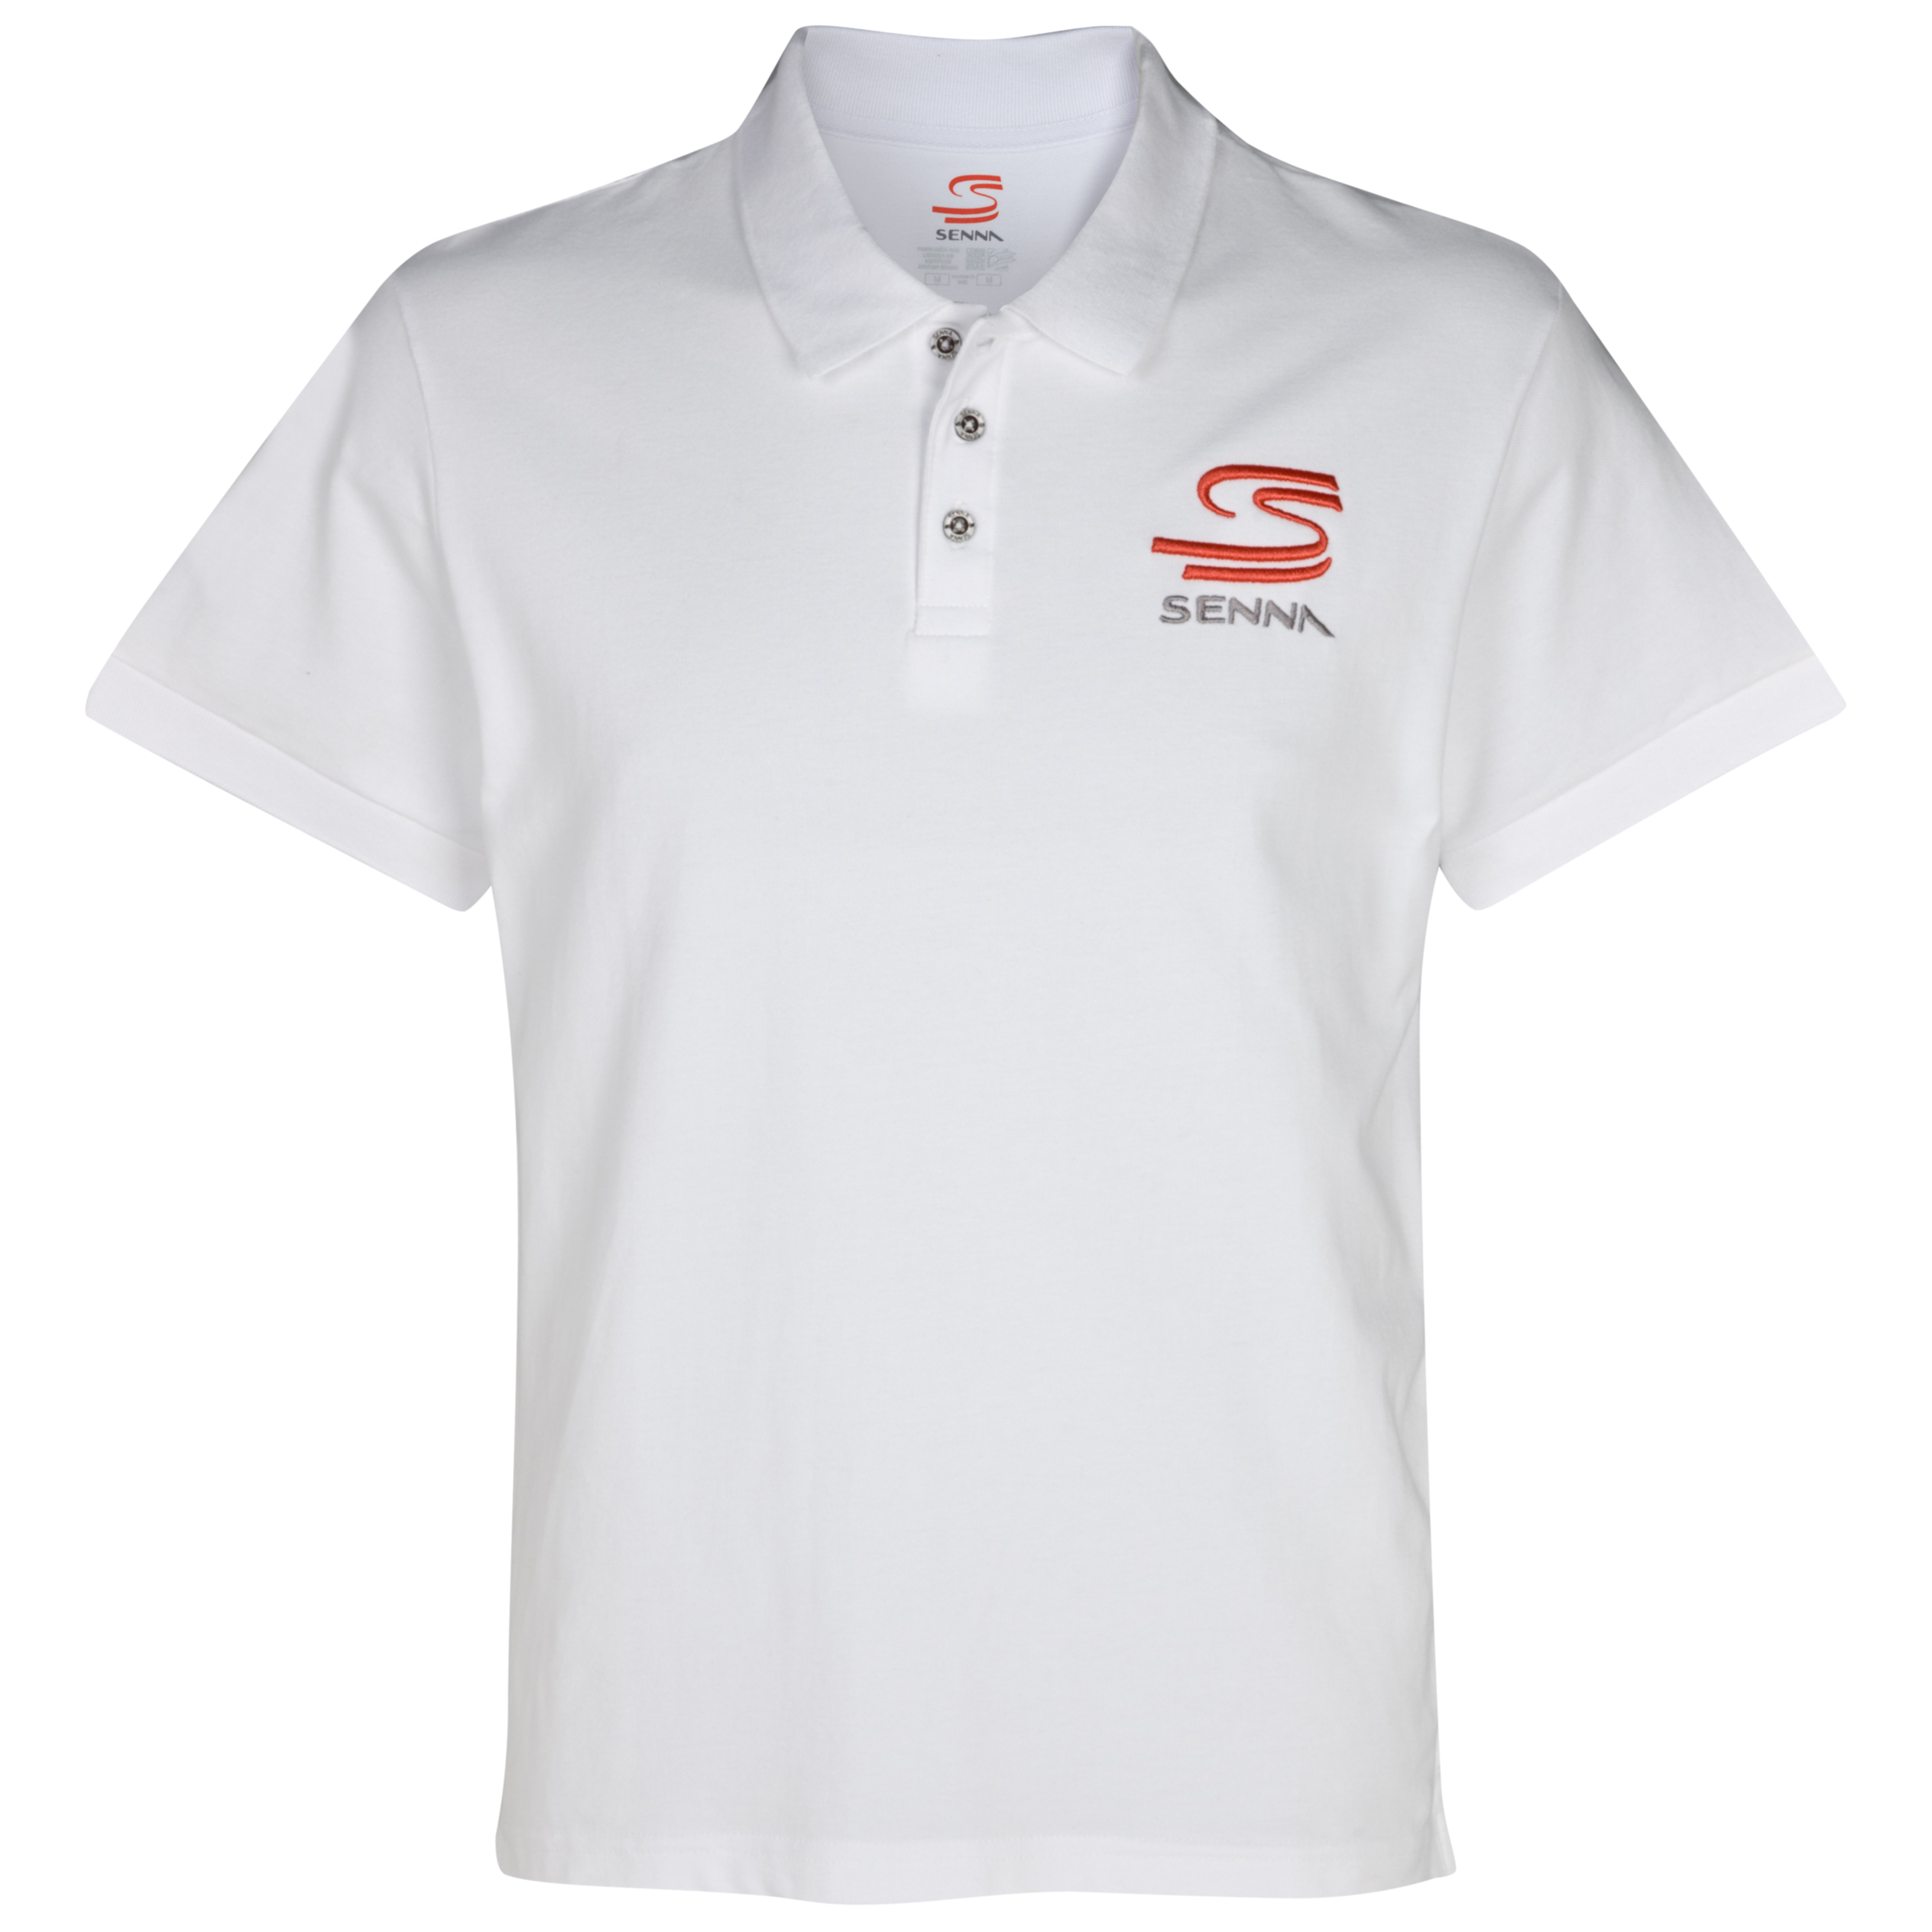 Ayrton Senna Double S Polo Shirt - White